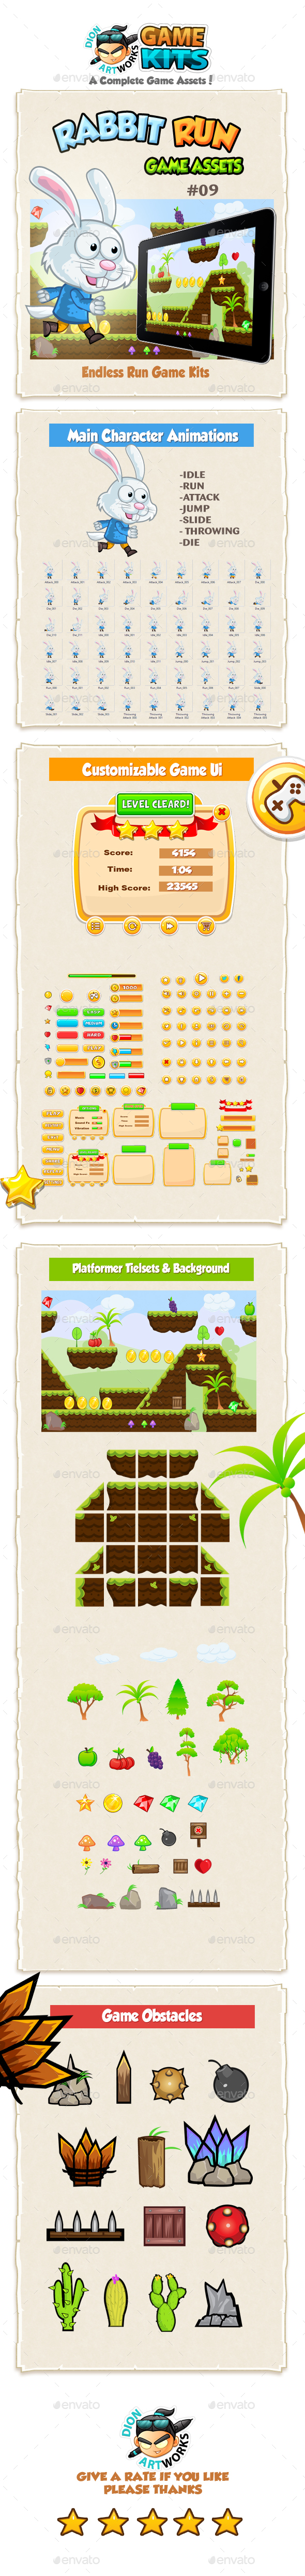 Rabbit Run Game Assets-09 - Game Kits Game Assets